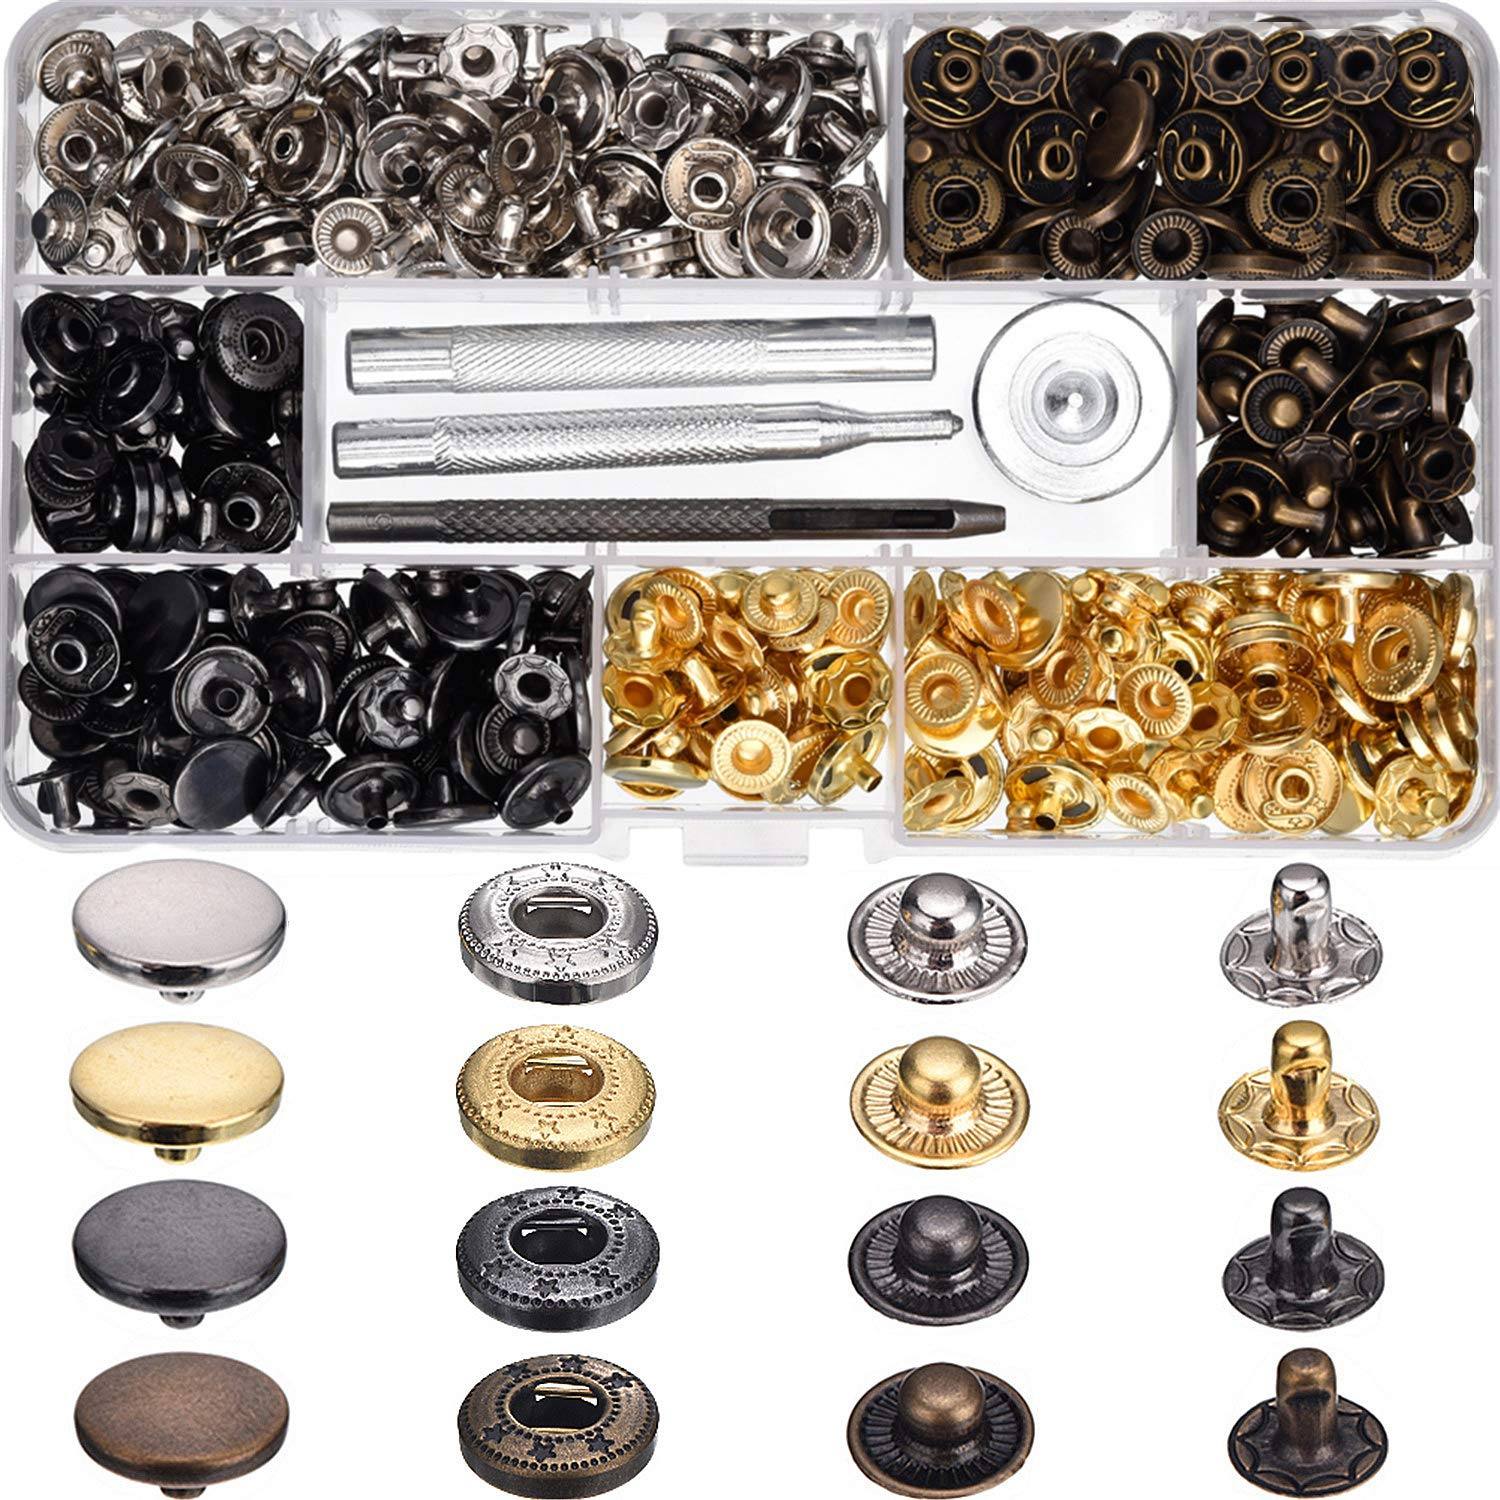 Hotop 100 Set Snap Fasteners Leather Snaps Button Kit Press Studs with 4 Pieces Fixing Tools, 12.5 mm in Diameter 4337005996